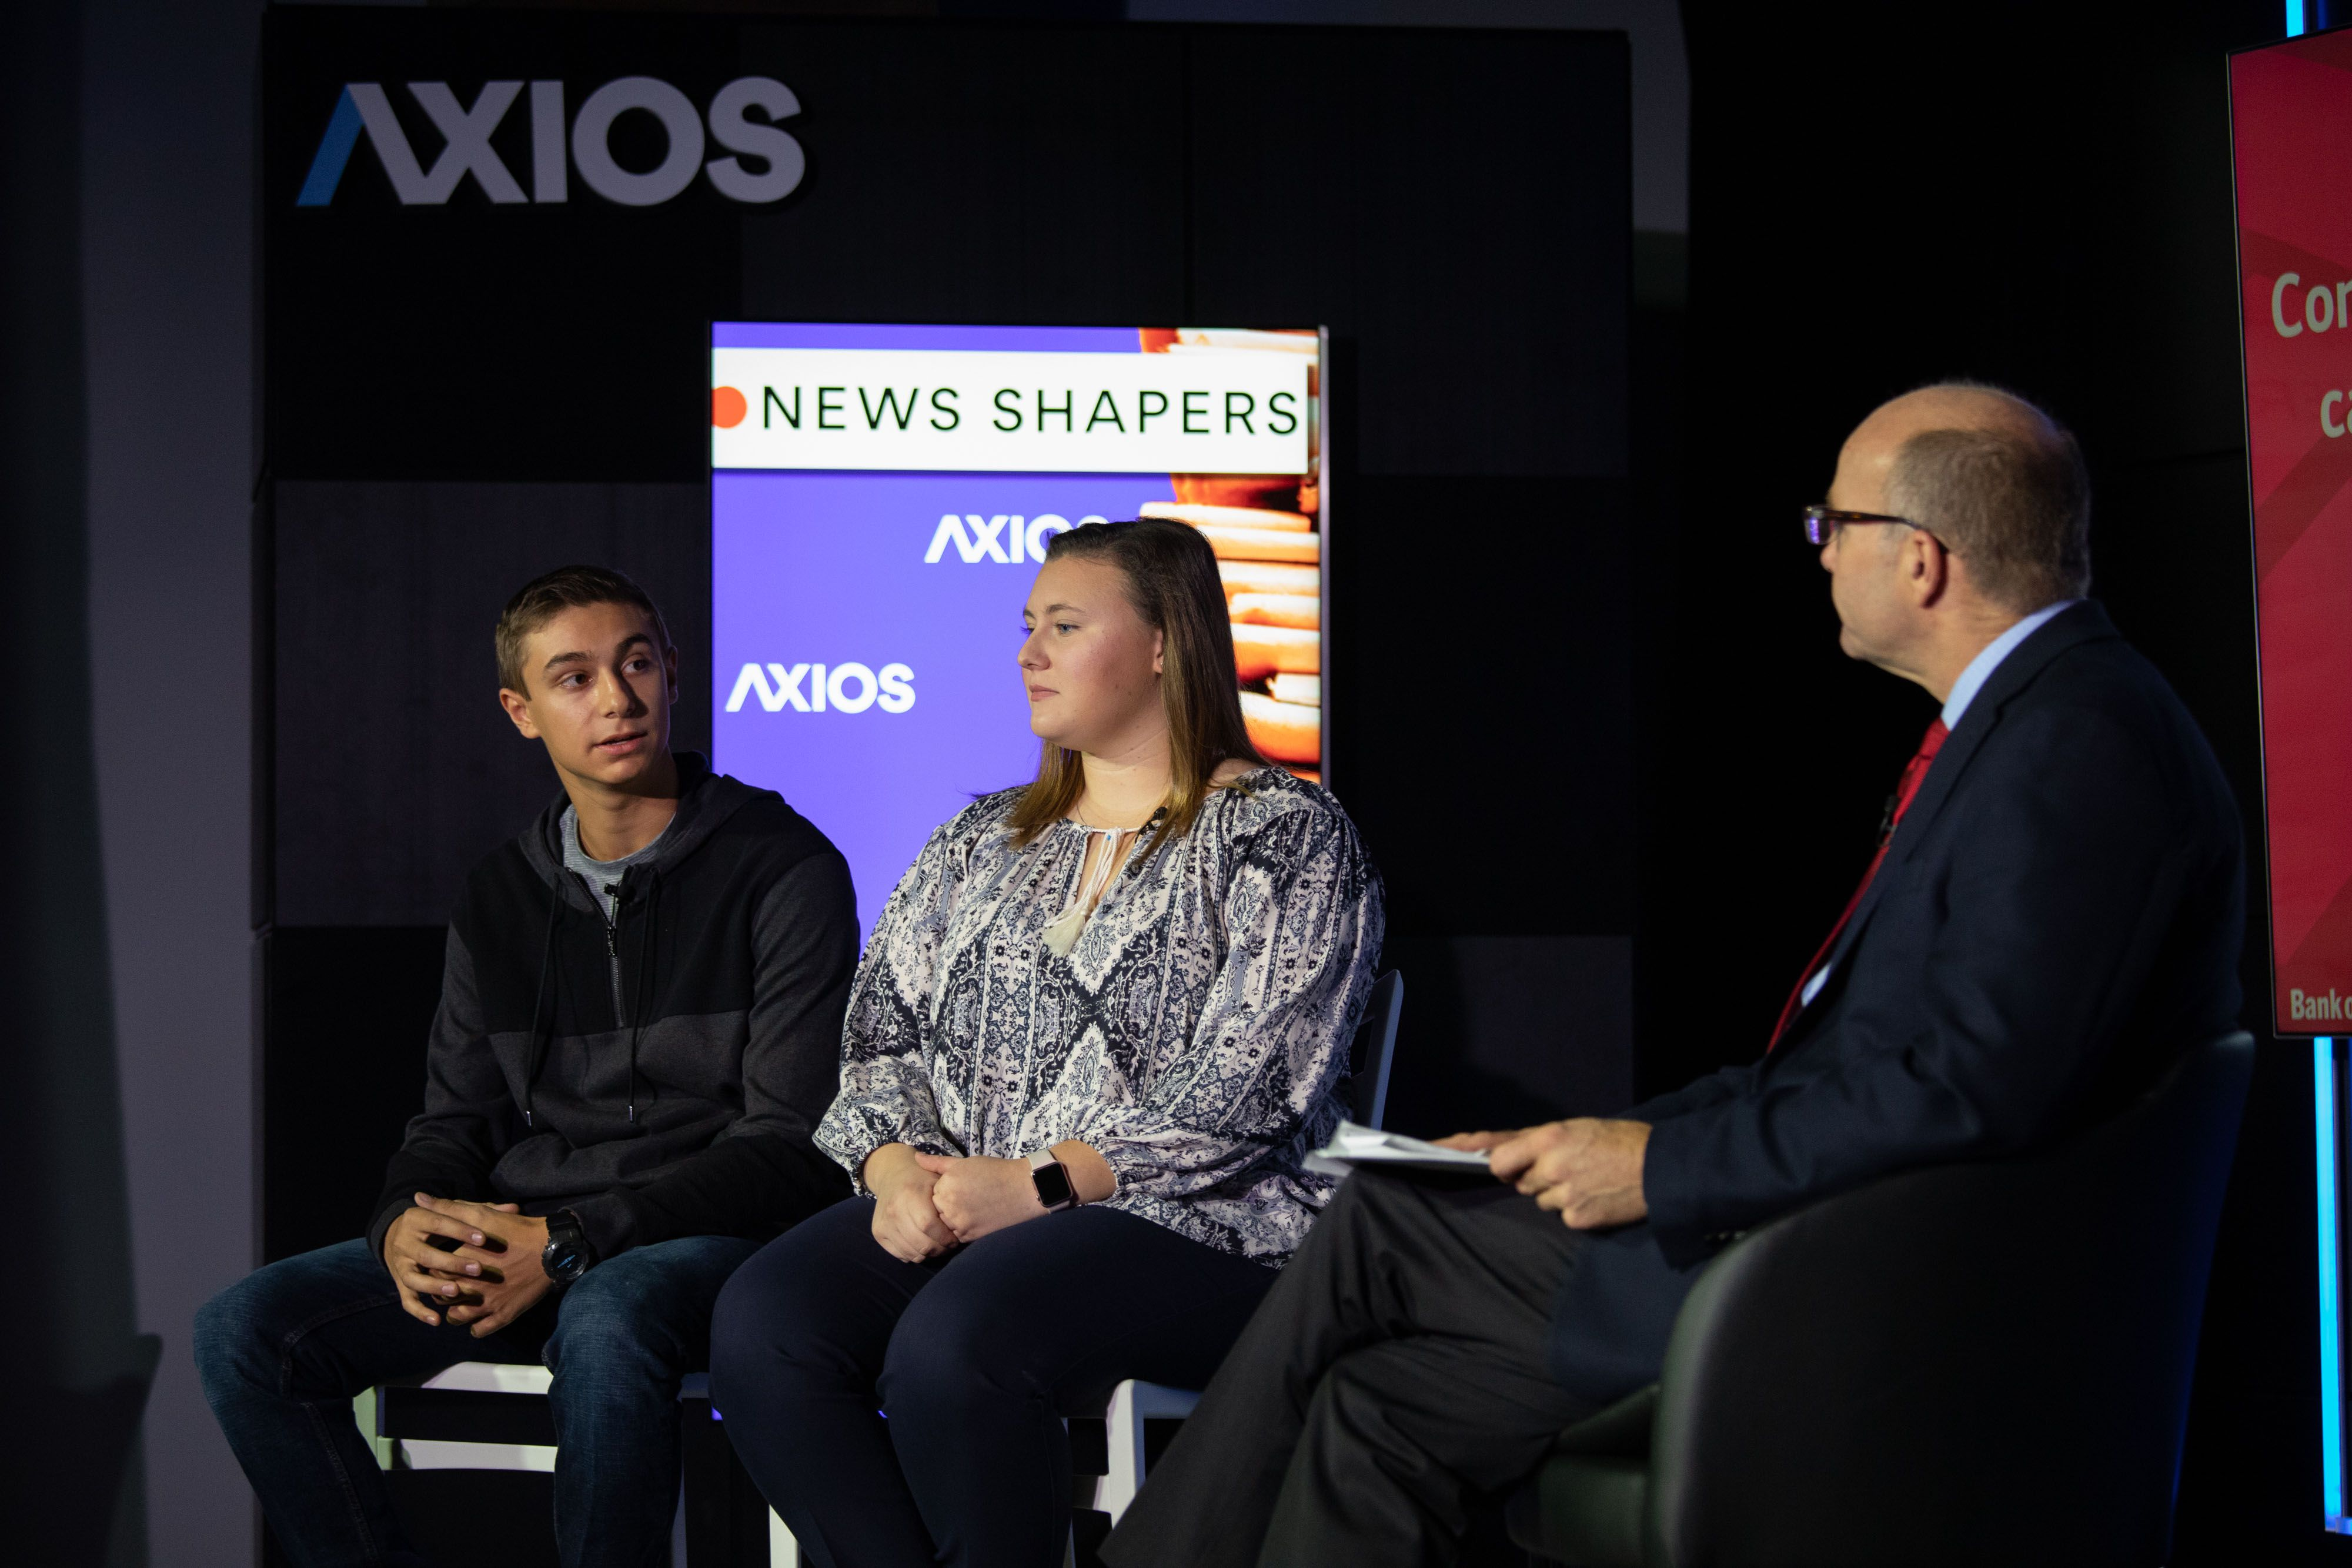 Winston Churchill High School students being interviewed by Mike Allen on the Axios stage